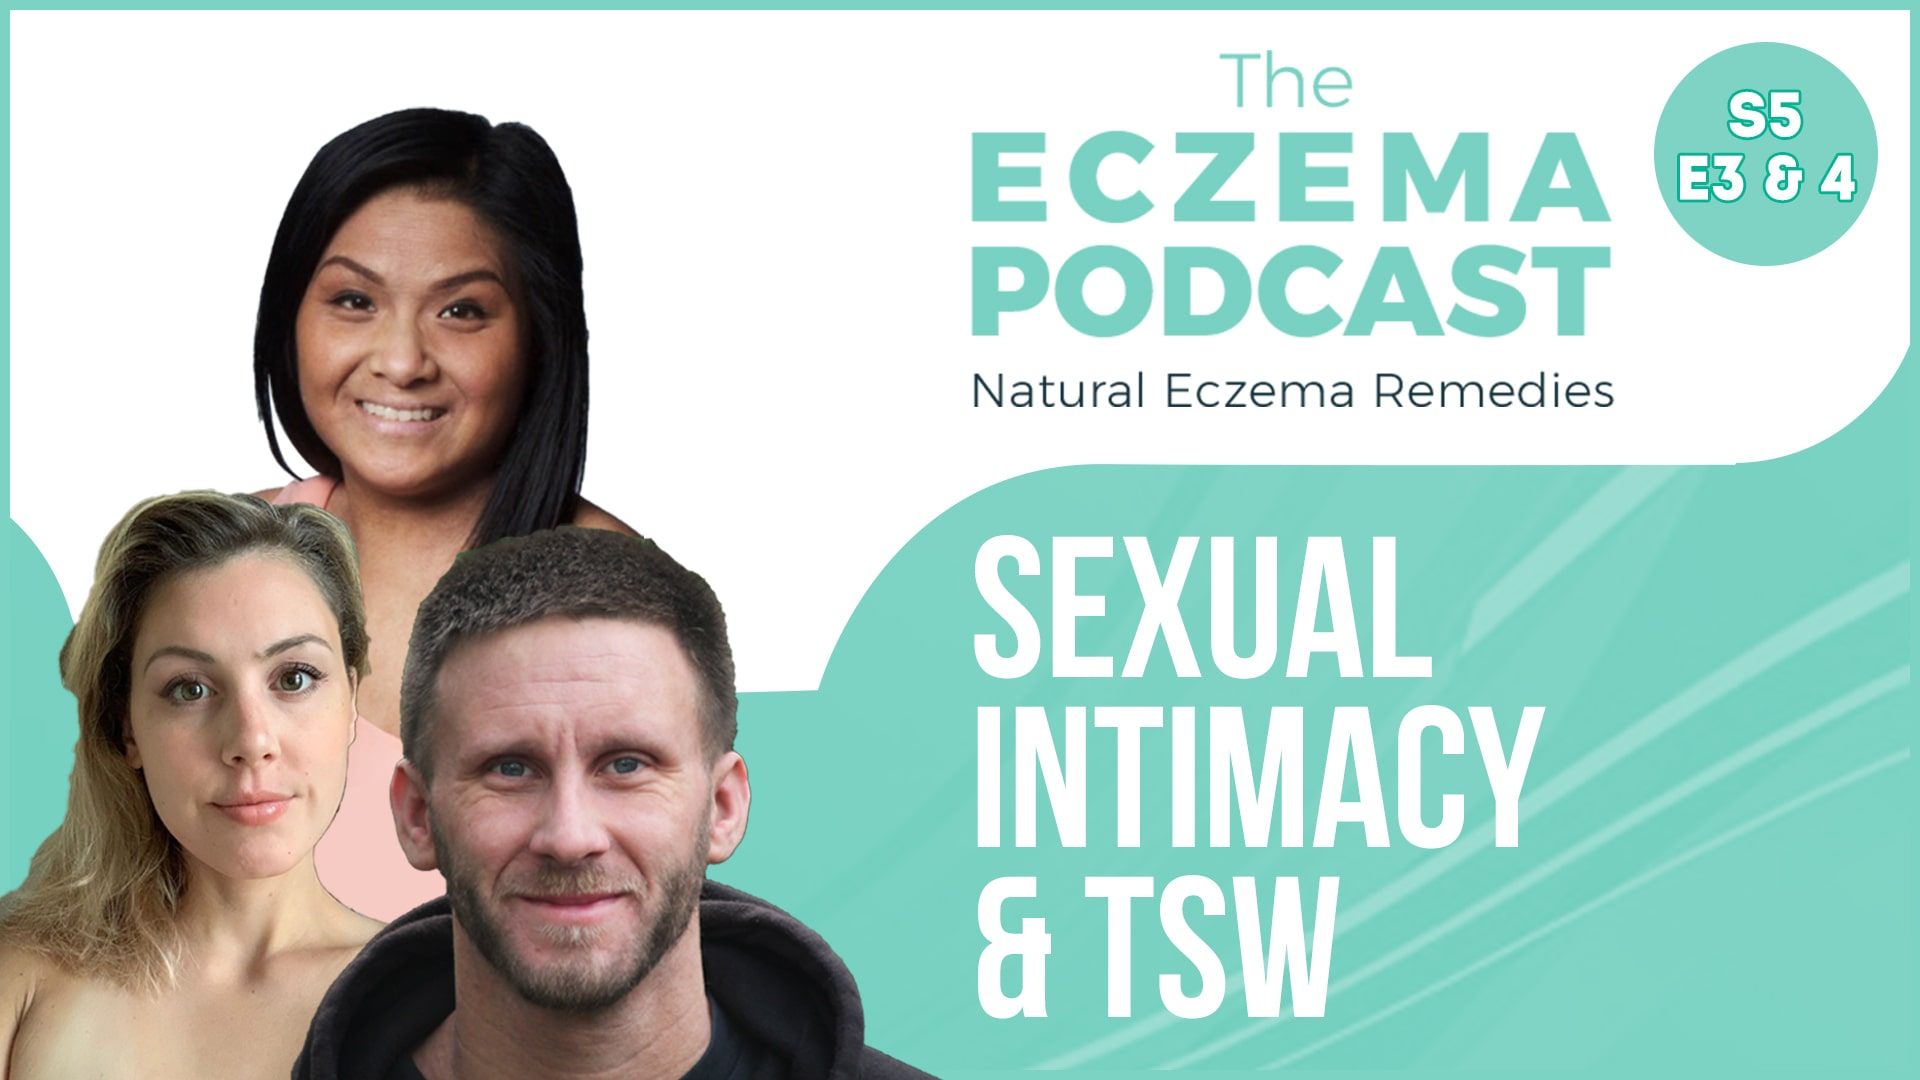 sex, sexual intimacy & eczema and topical steroid withdrawal (TSW)